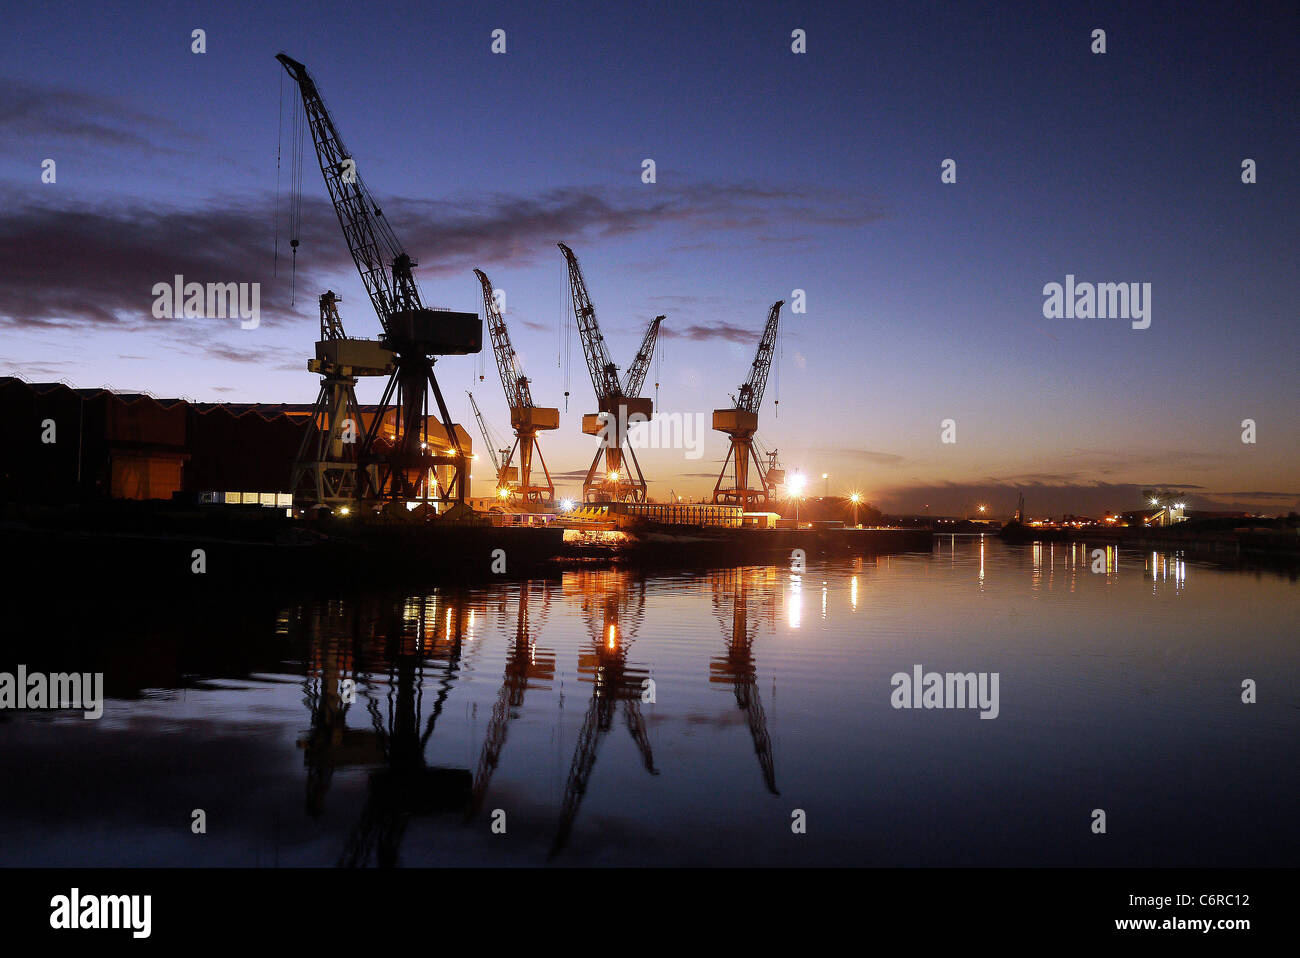 Cranes at the BAE Shipyard on the River Clyde, Glasgow, Scotland silhouetted  against the night sky. - Stock Image